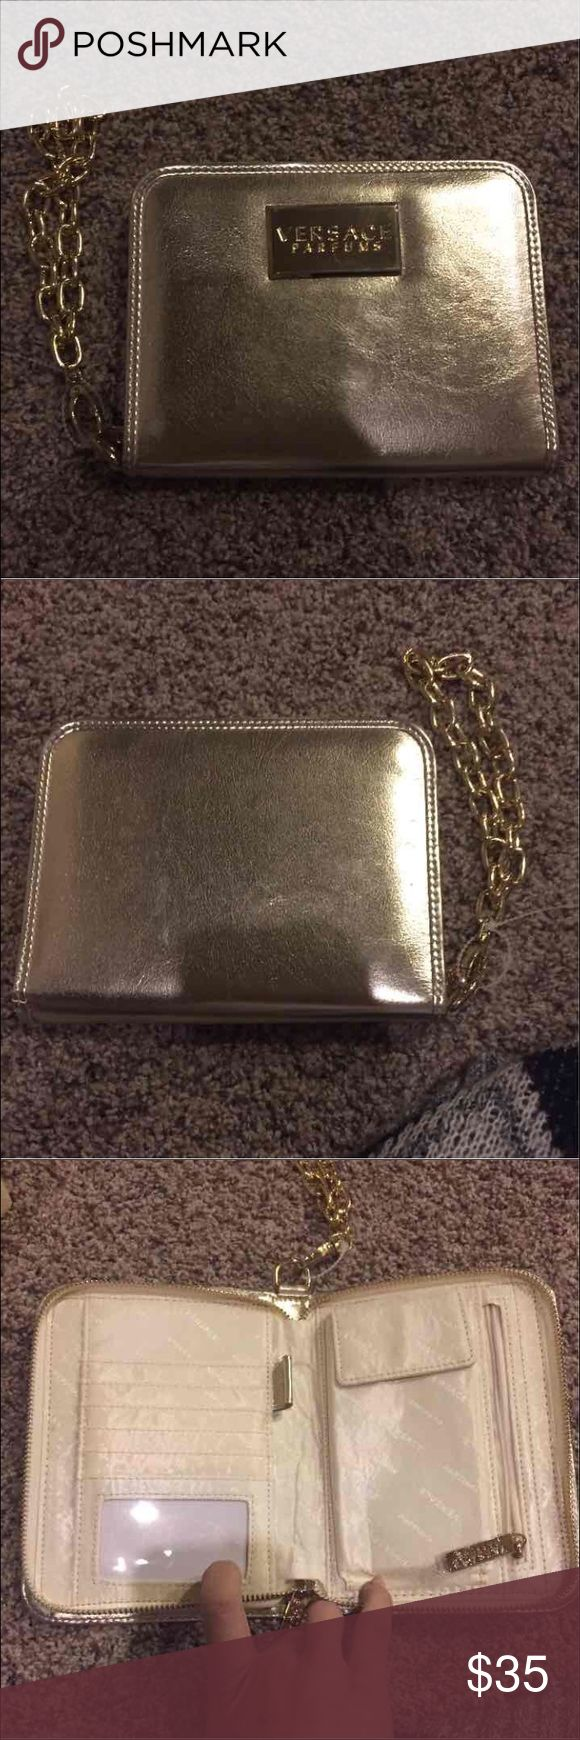 Authentic Versace gold clutch New without tags . Holds money phone cards ect.. 100% authentic . Super cute no flaws Versace Bags Clutches & Wristlets